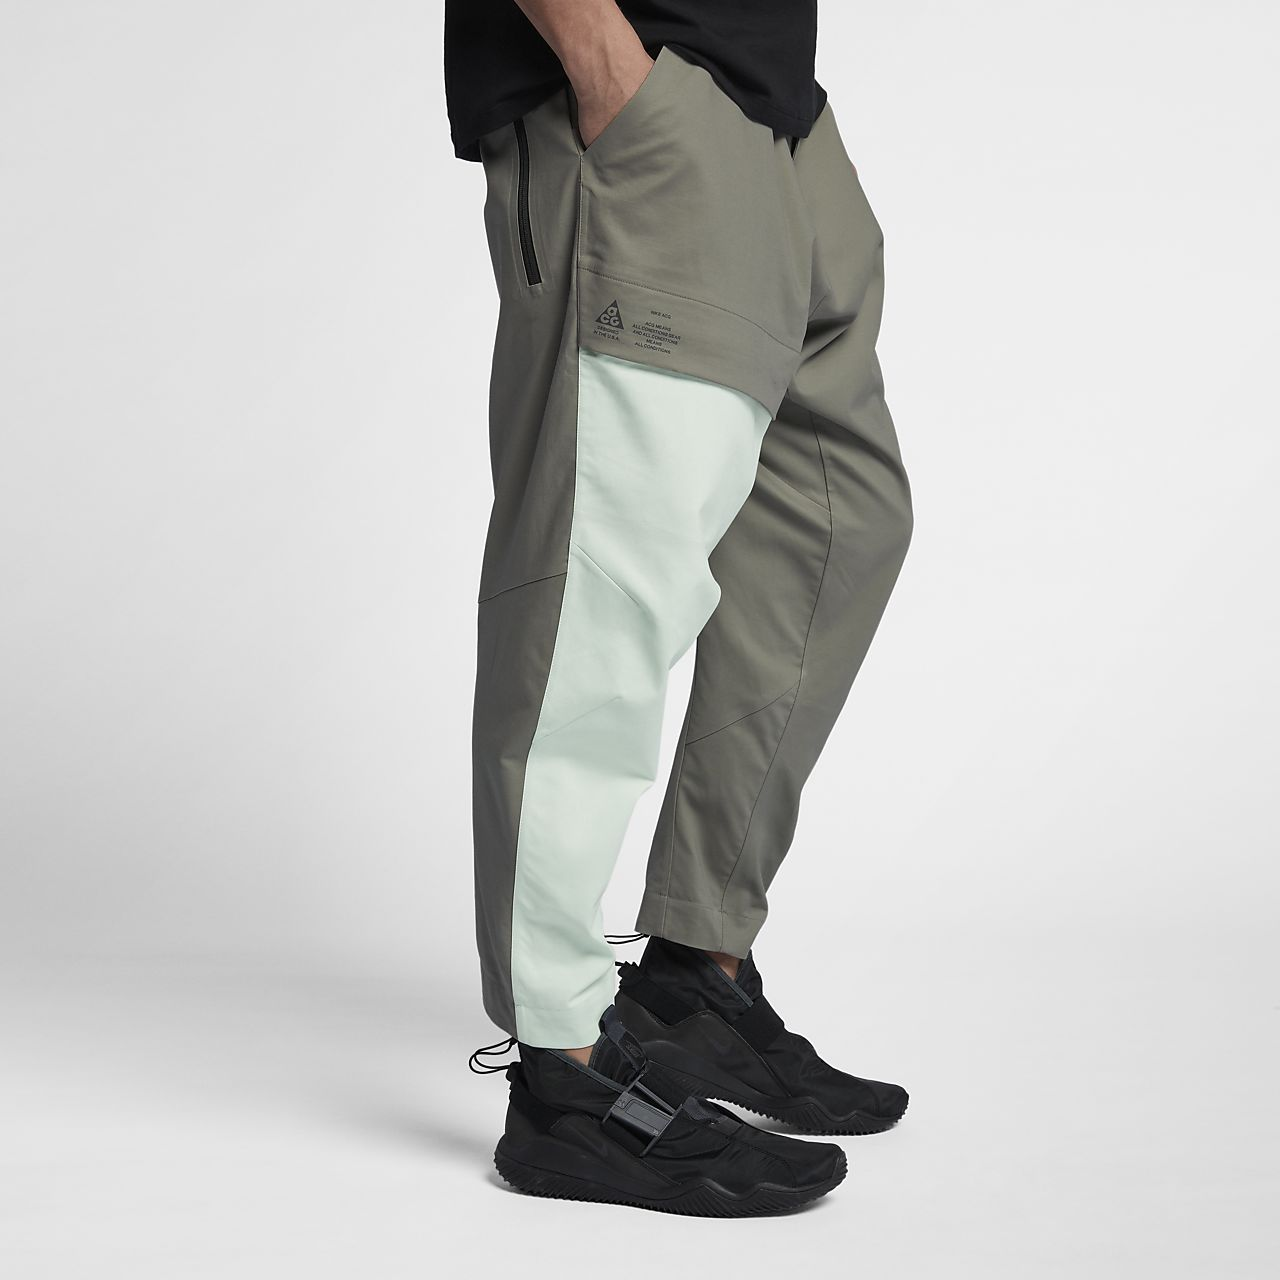 the best attitude 2f880 cac6f Low Resolution NikeLab ACG Men s Trousers NikeLab ACG Men s Trousers